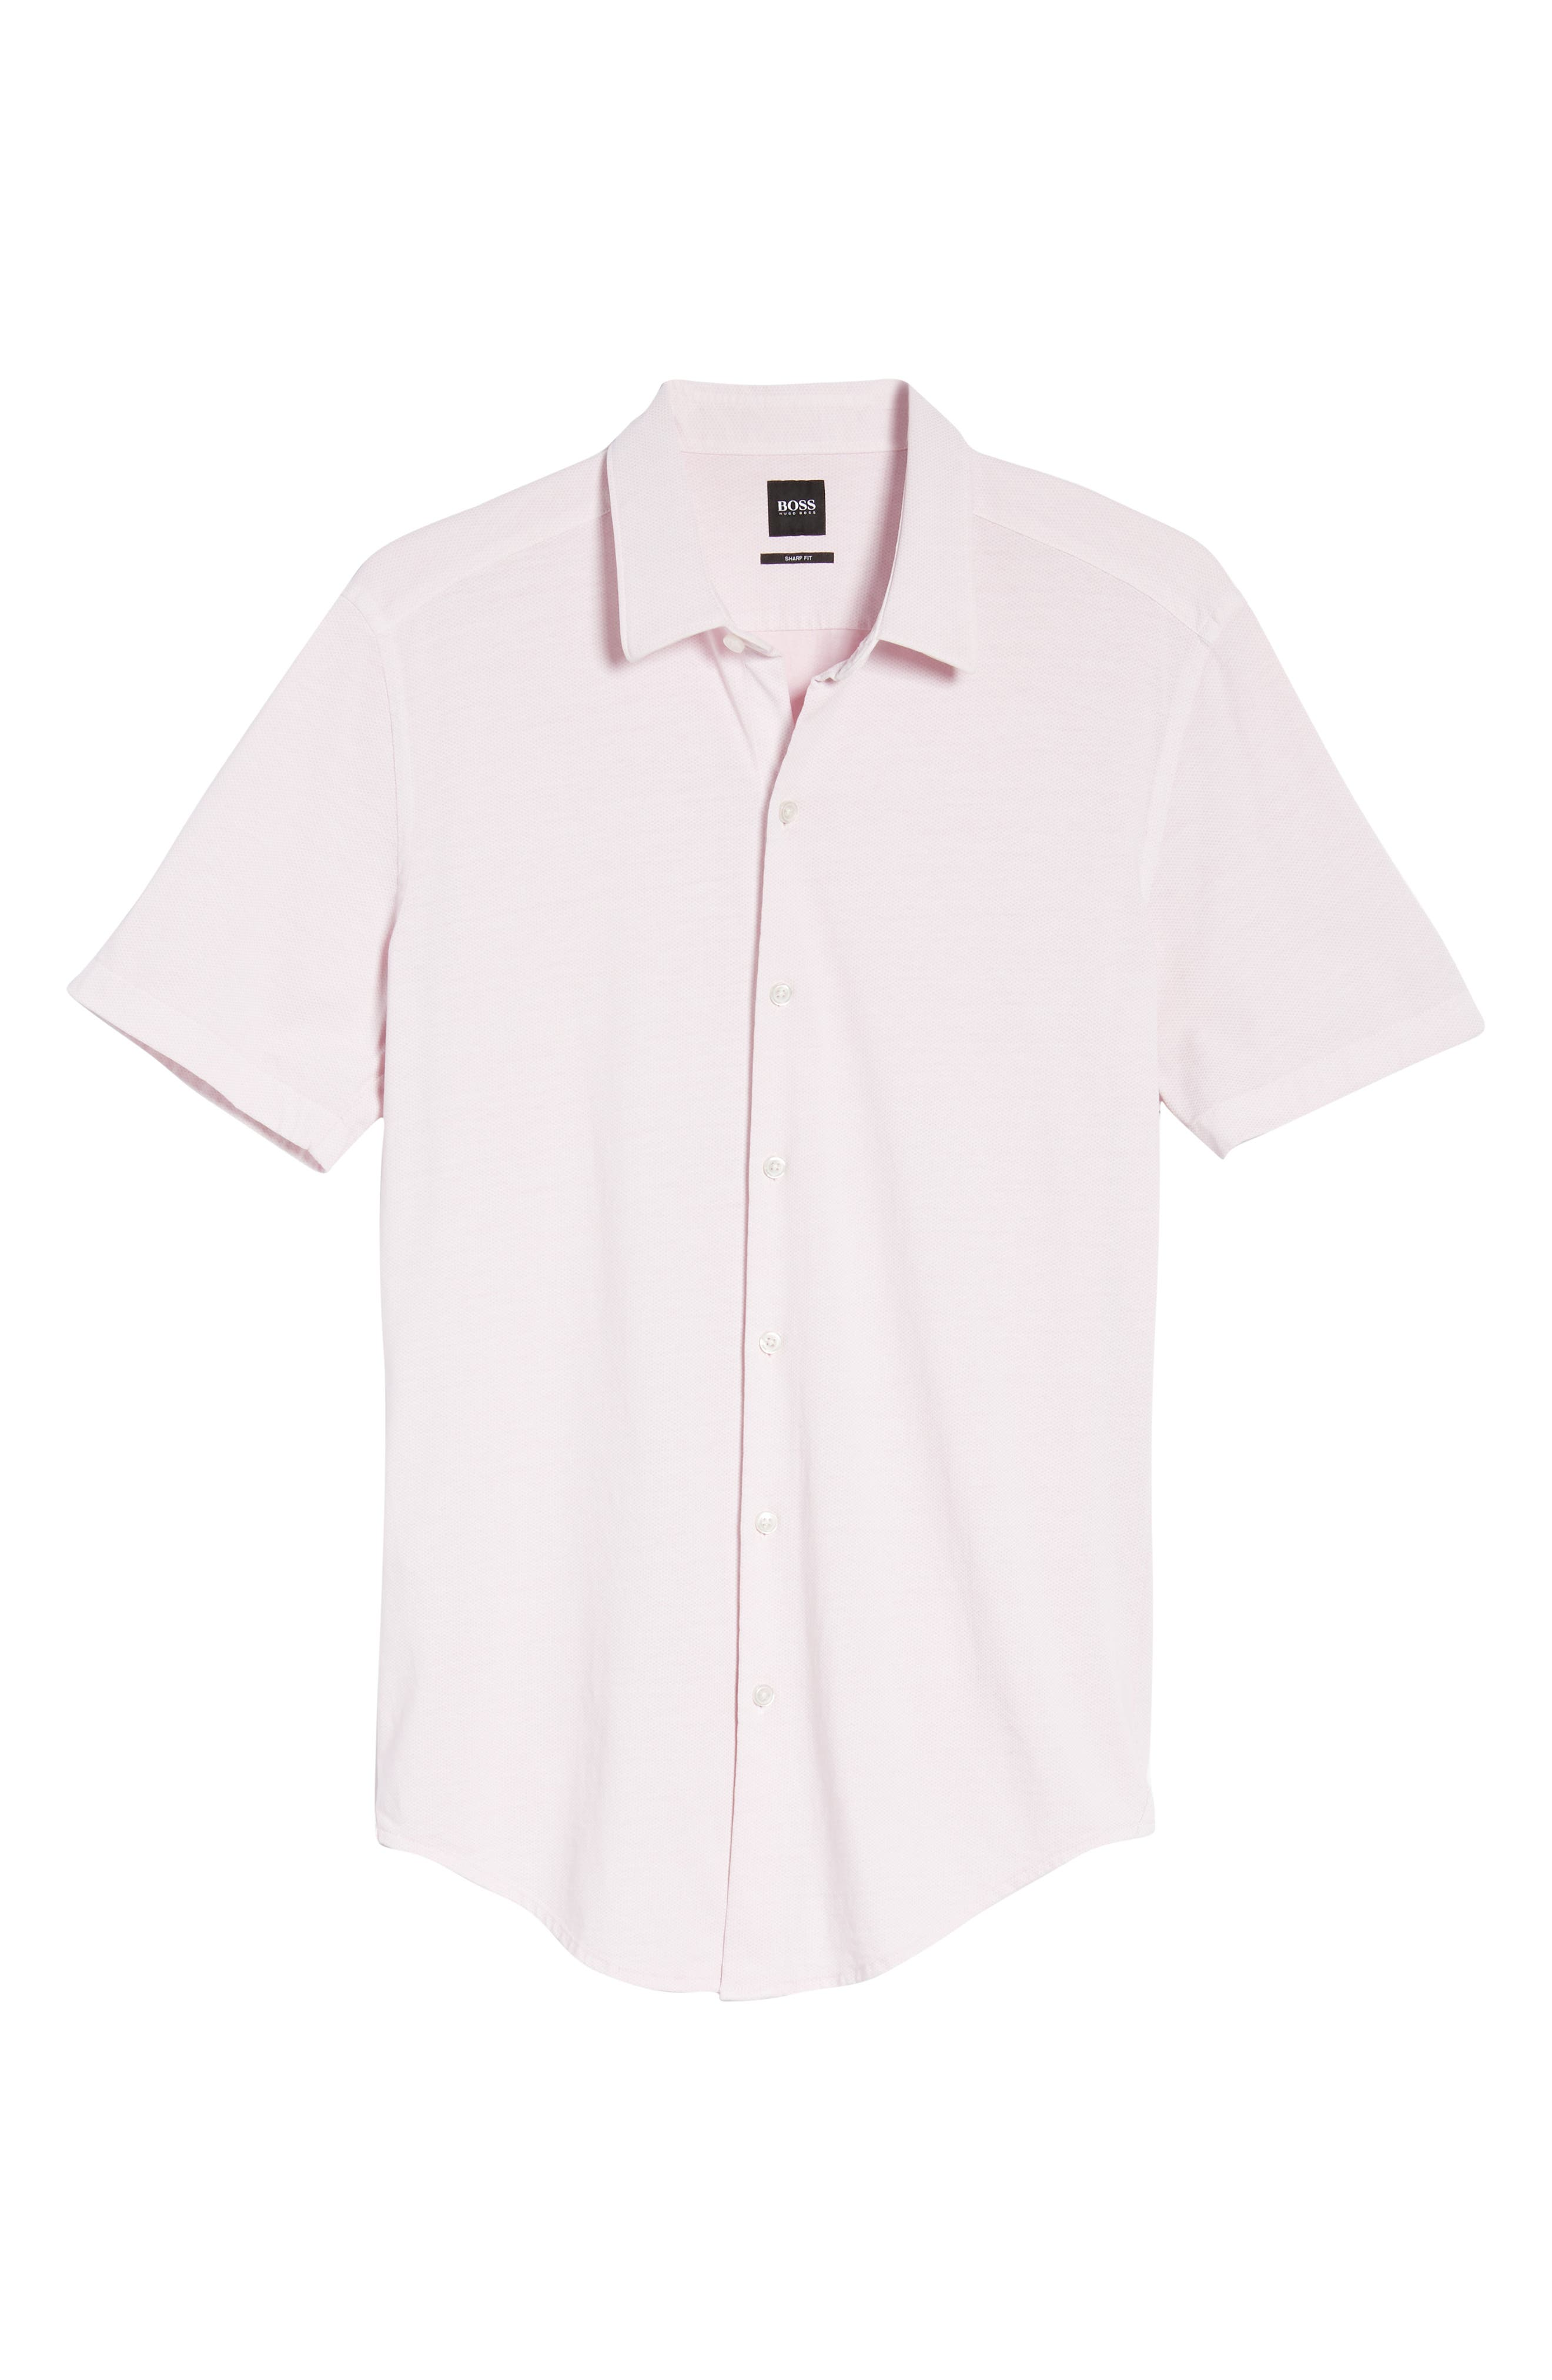 Robb Trim Fit Jersey Sport Shirt,                             Alternate thumbnail 6, color,                             Pink